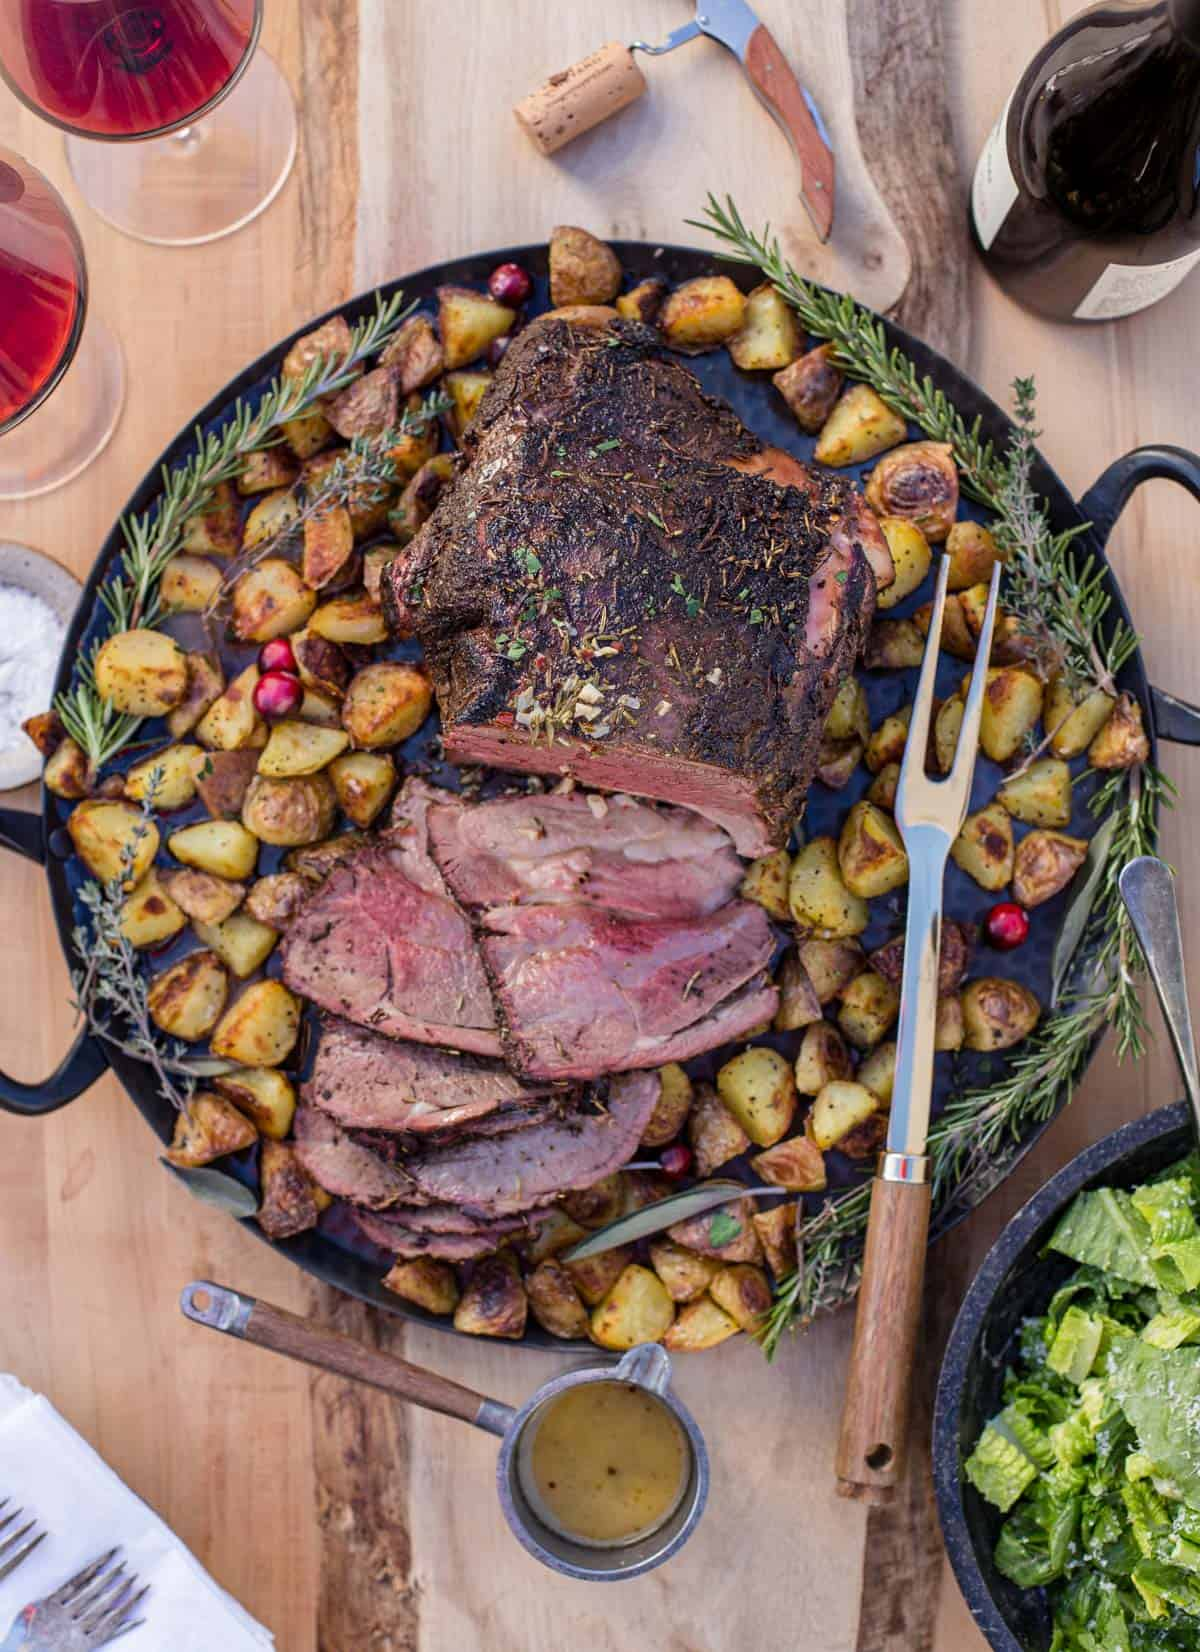 A bone in Smoked Leg of Lamb on a platter with roasted potatoes